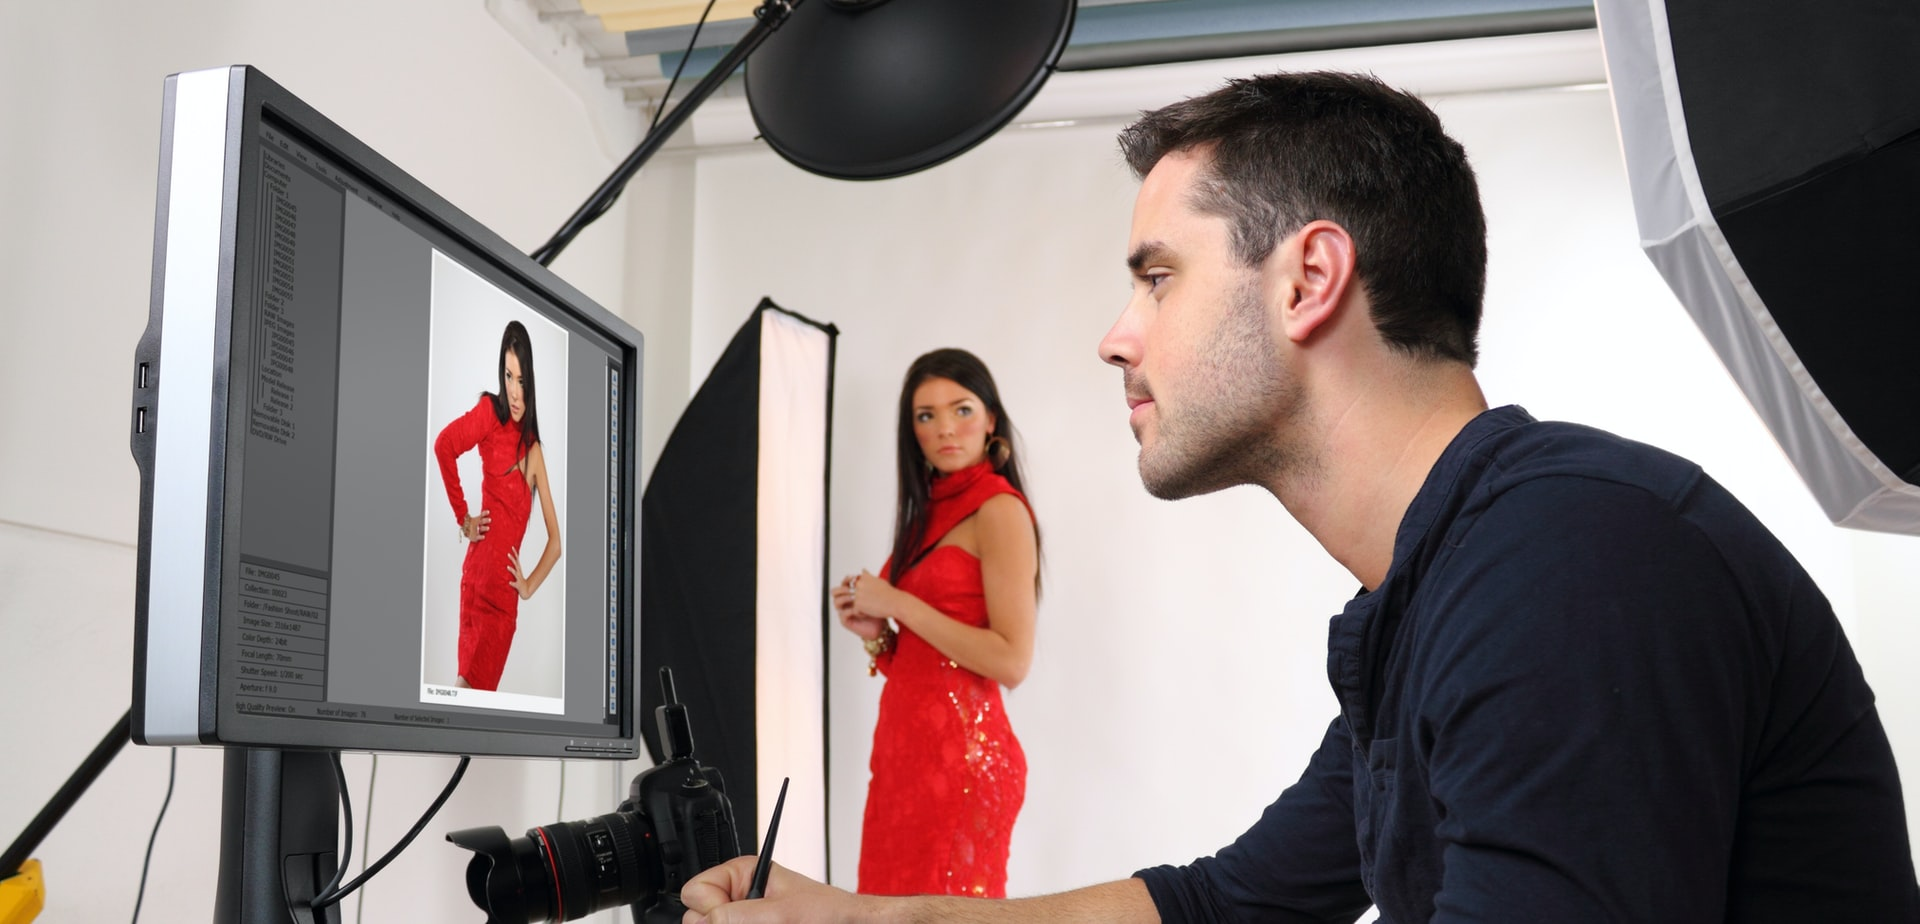 photographer sits at computer editing RAW photo of model who is posing in set in background